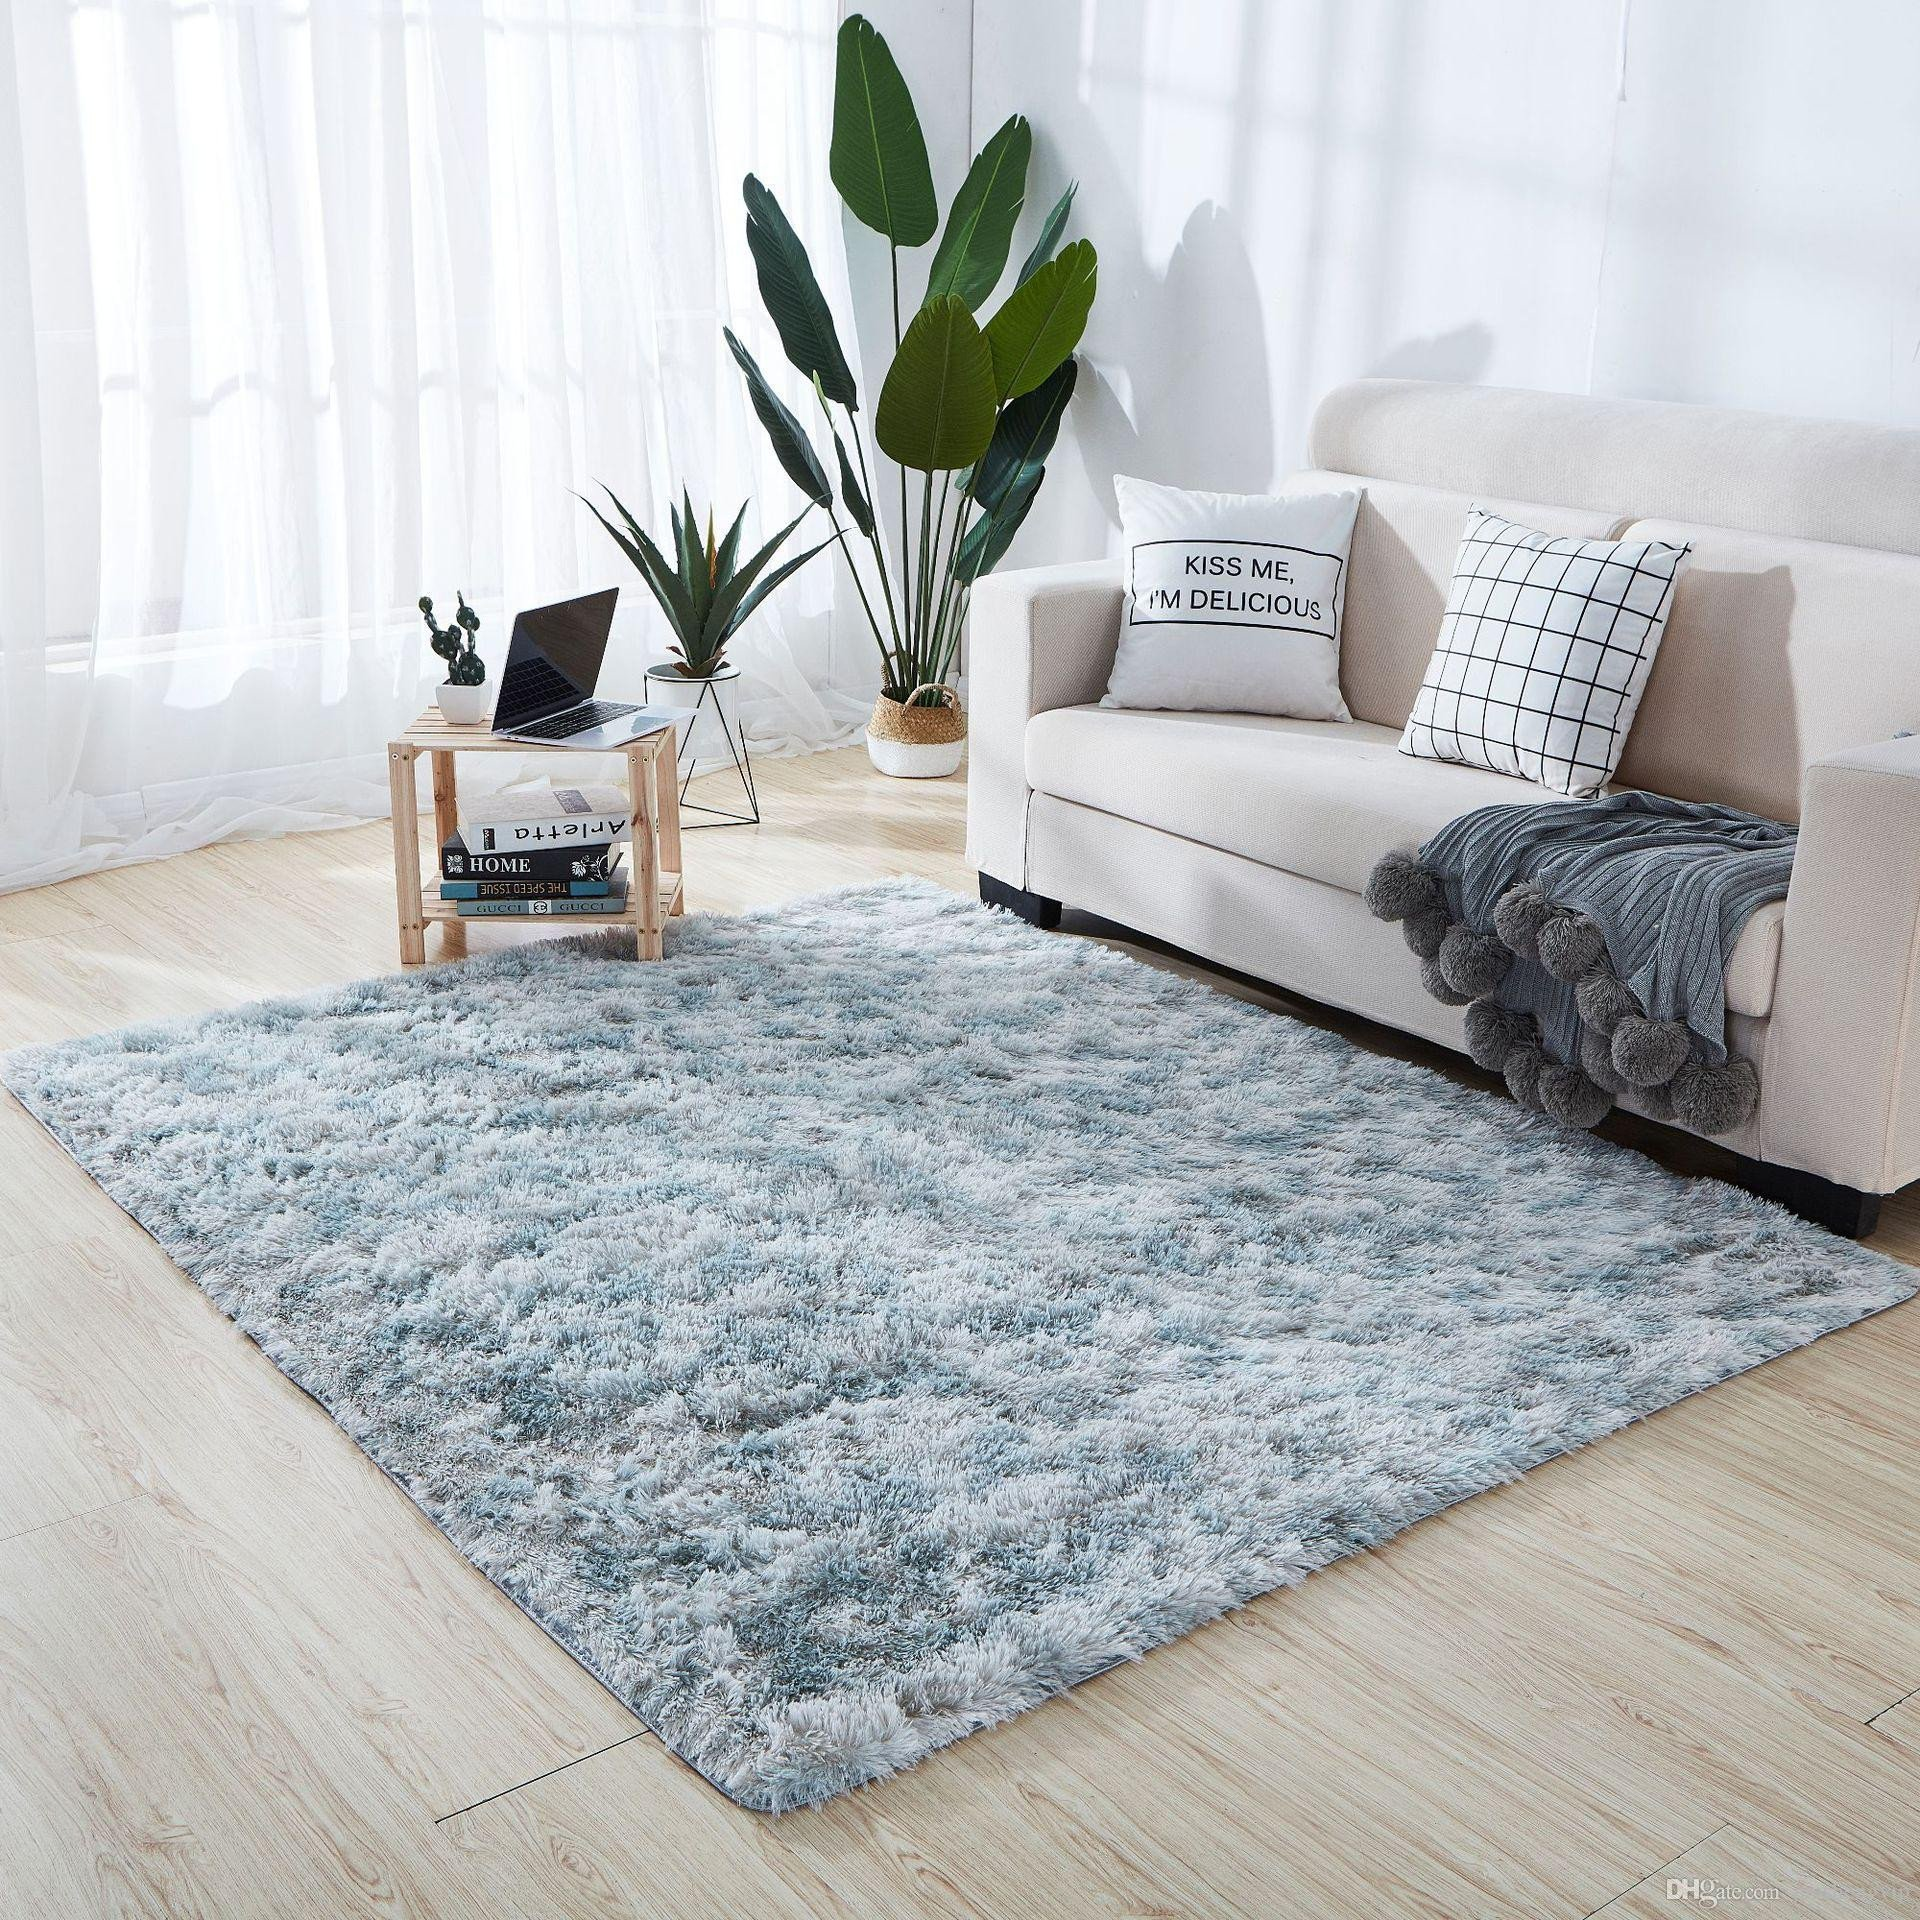 Fluffy Carpet for Bedroom Luxury Fashion Extra soft Carpet Anti Skid Shaggy Warm area Rug for Indoor Living Room Bedroom Carpet Binding Beaulieu Carpet From Junshengvip $10 06